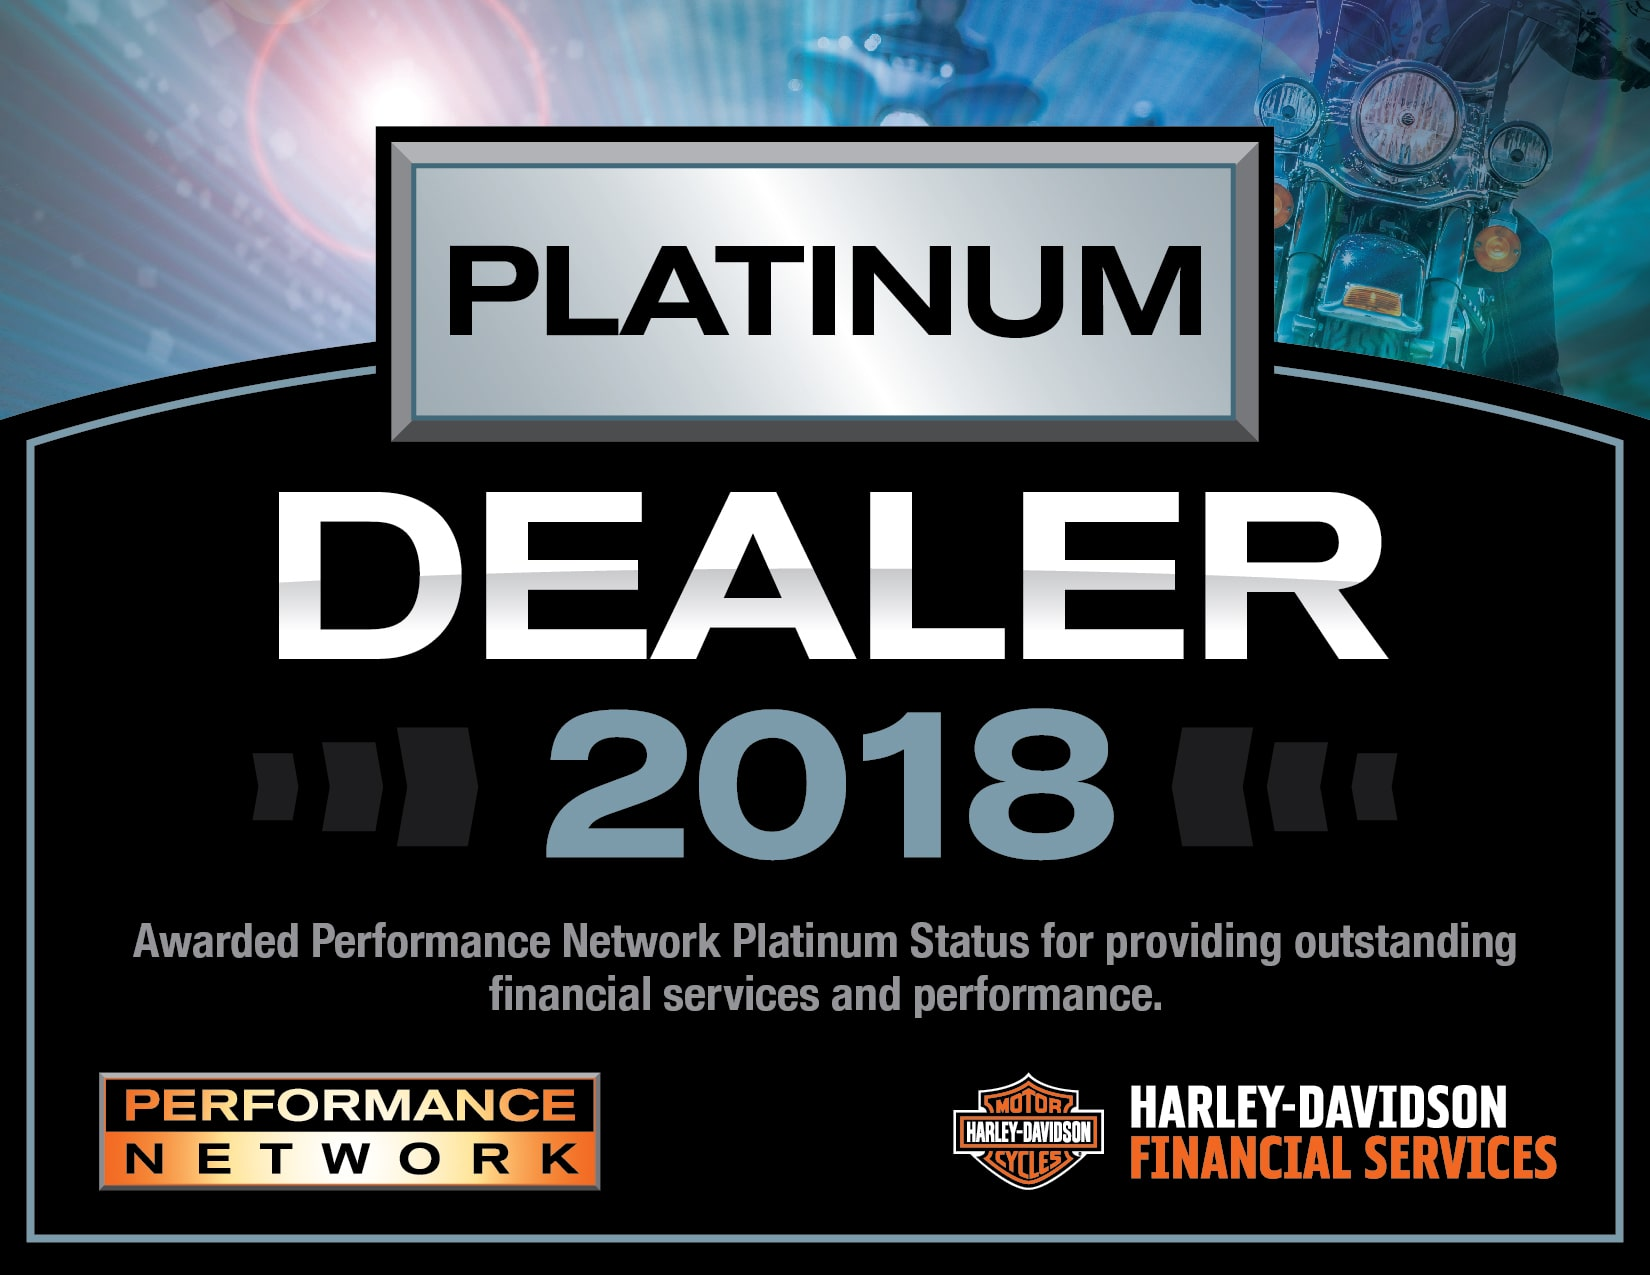 Platinum Dealer Award 2018